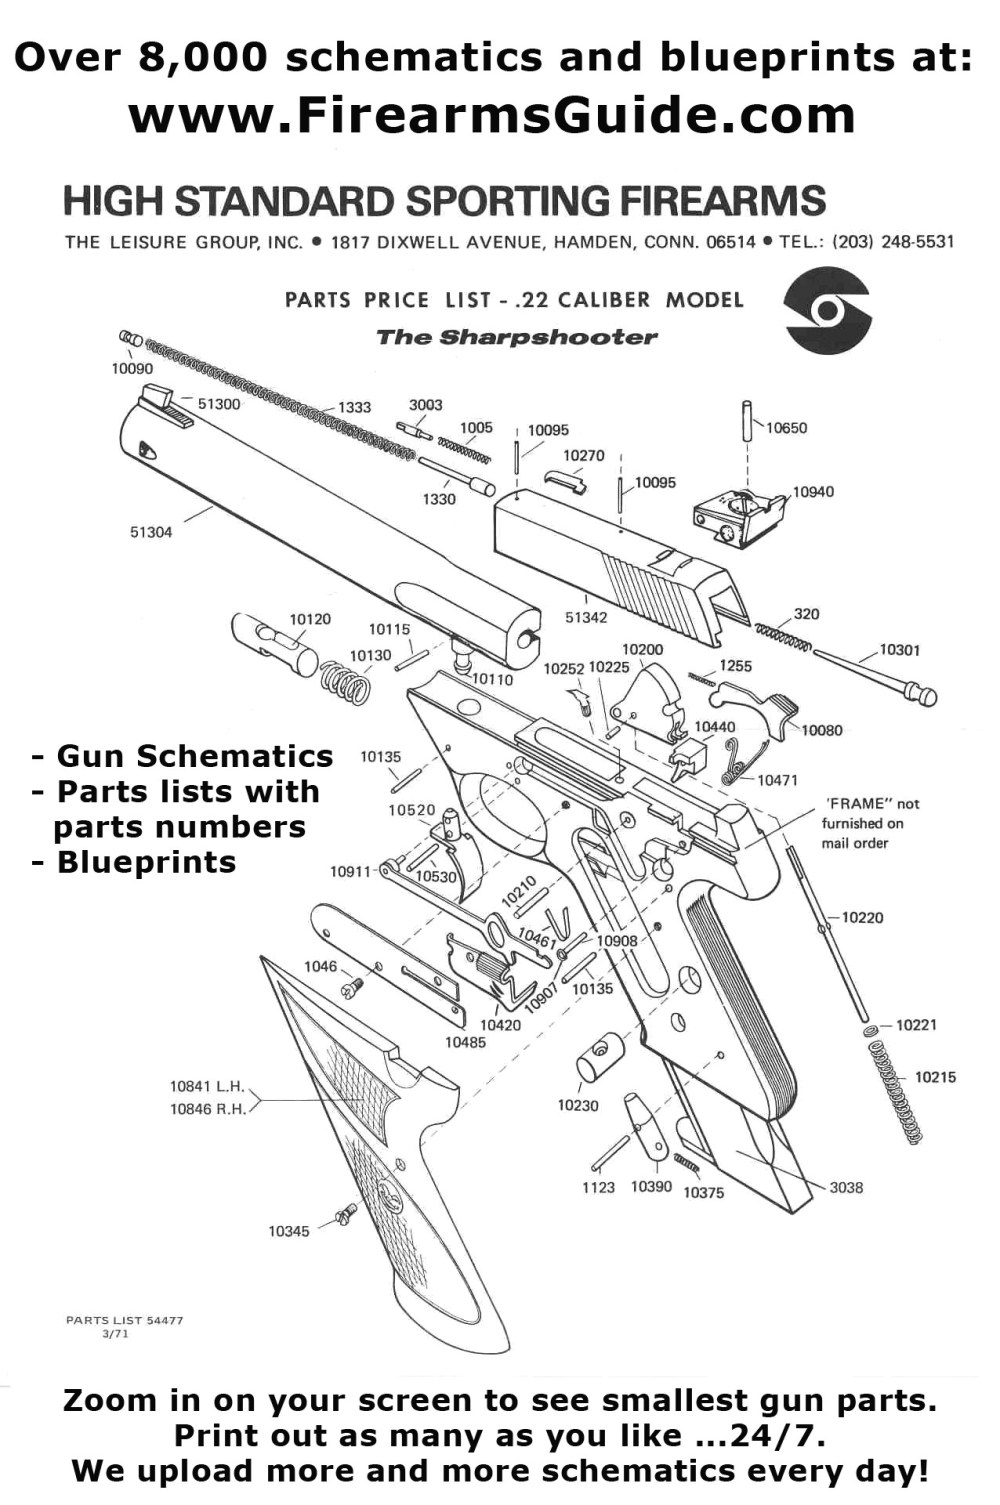 medium resolution of if you need gun schematics diagrams or exploded views with original parts lists with parts descriptions and original parts numbers or even original gun